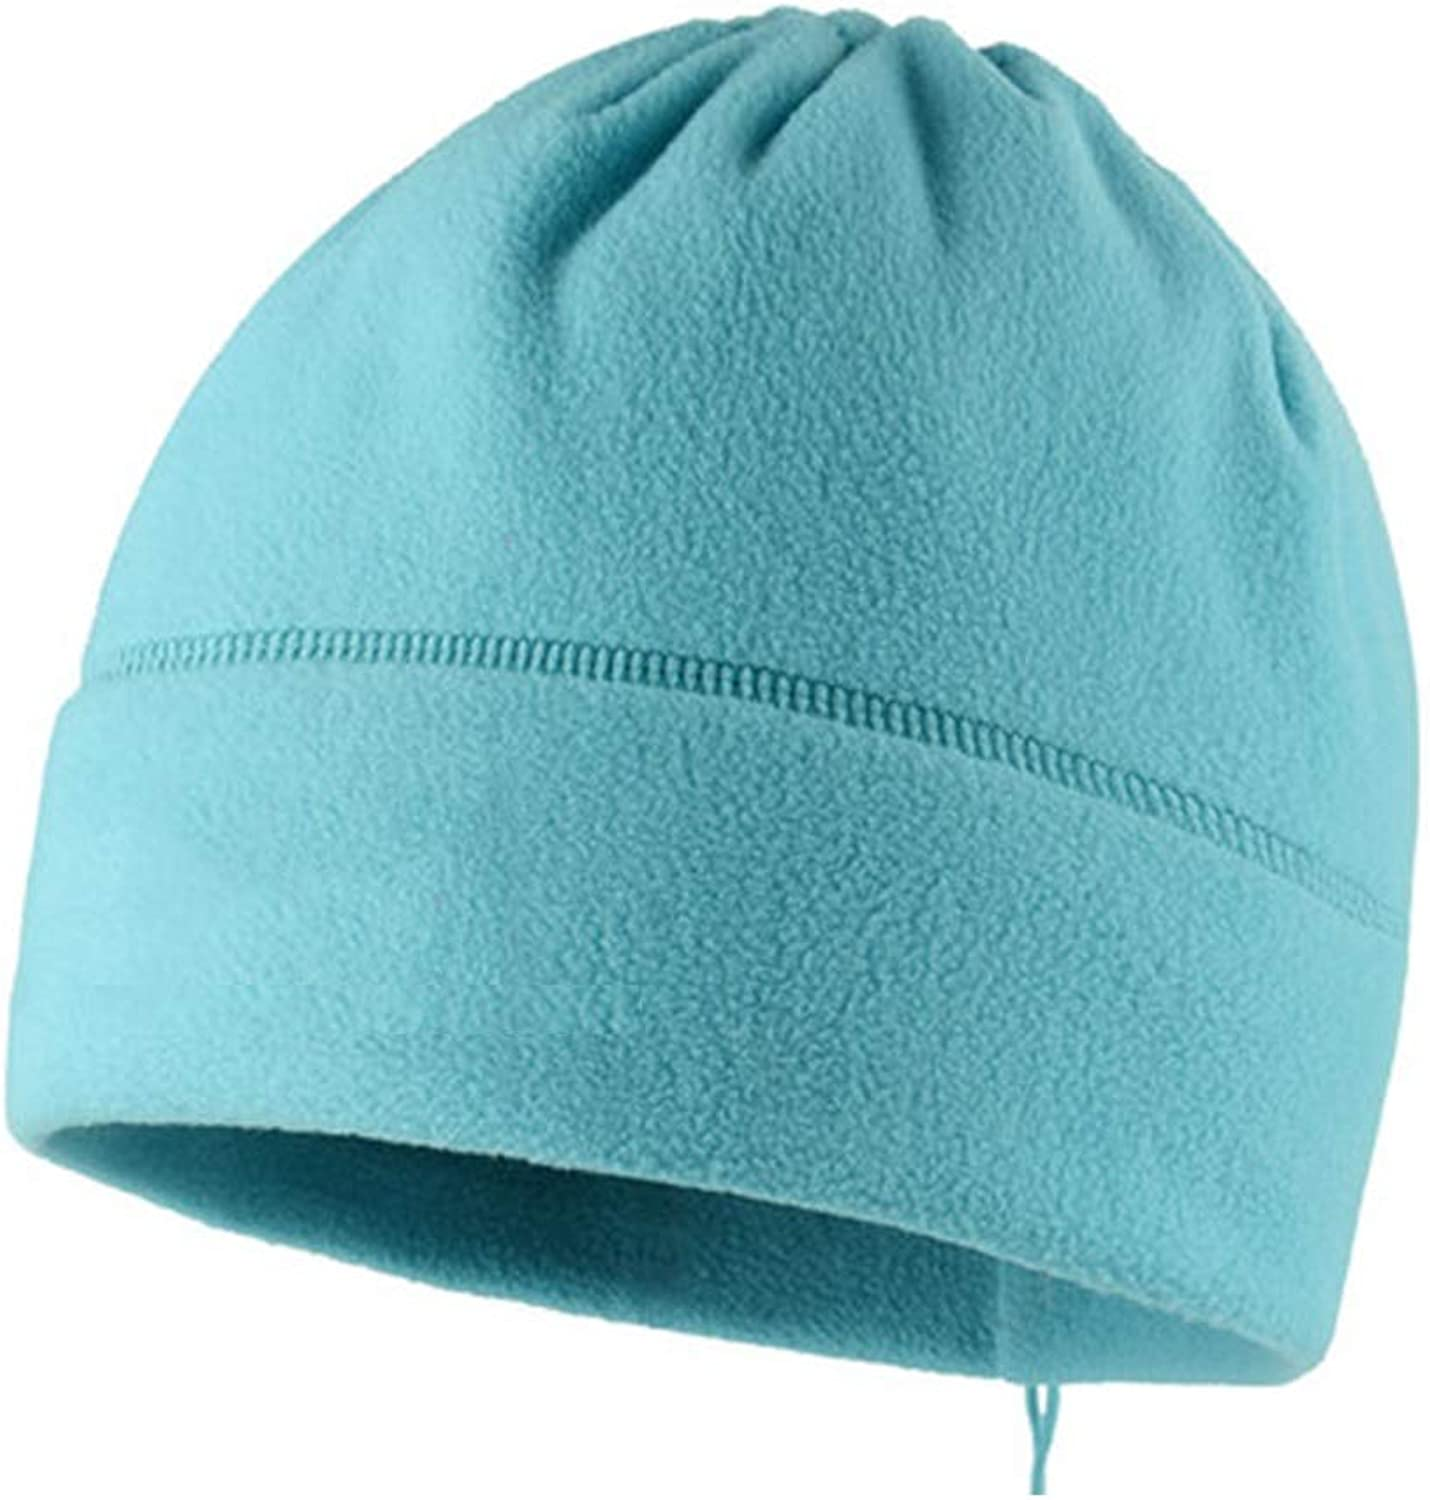 Summer Beanie Slouchy Hat Thin Baggy Cooling Light Fashion Unisex